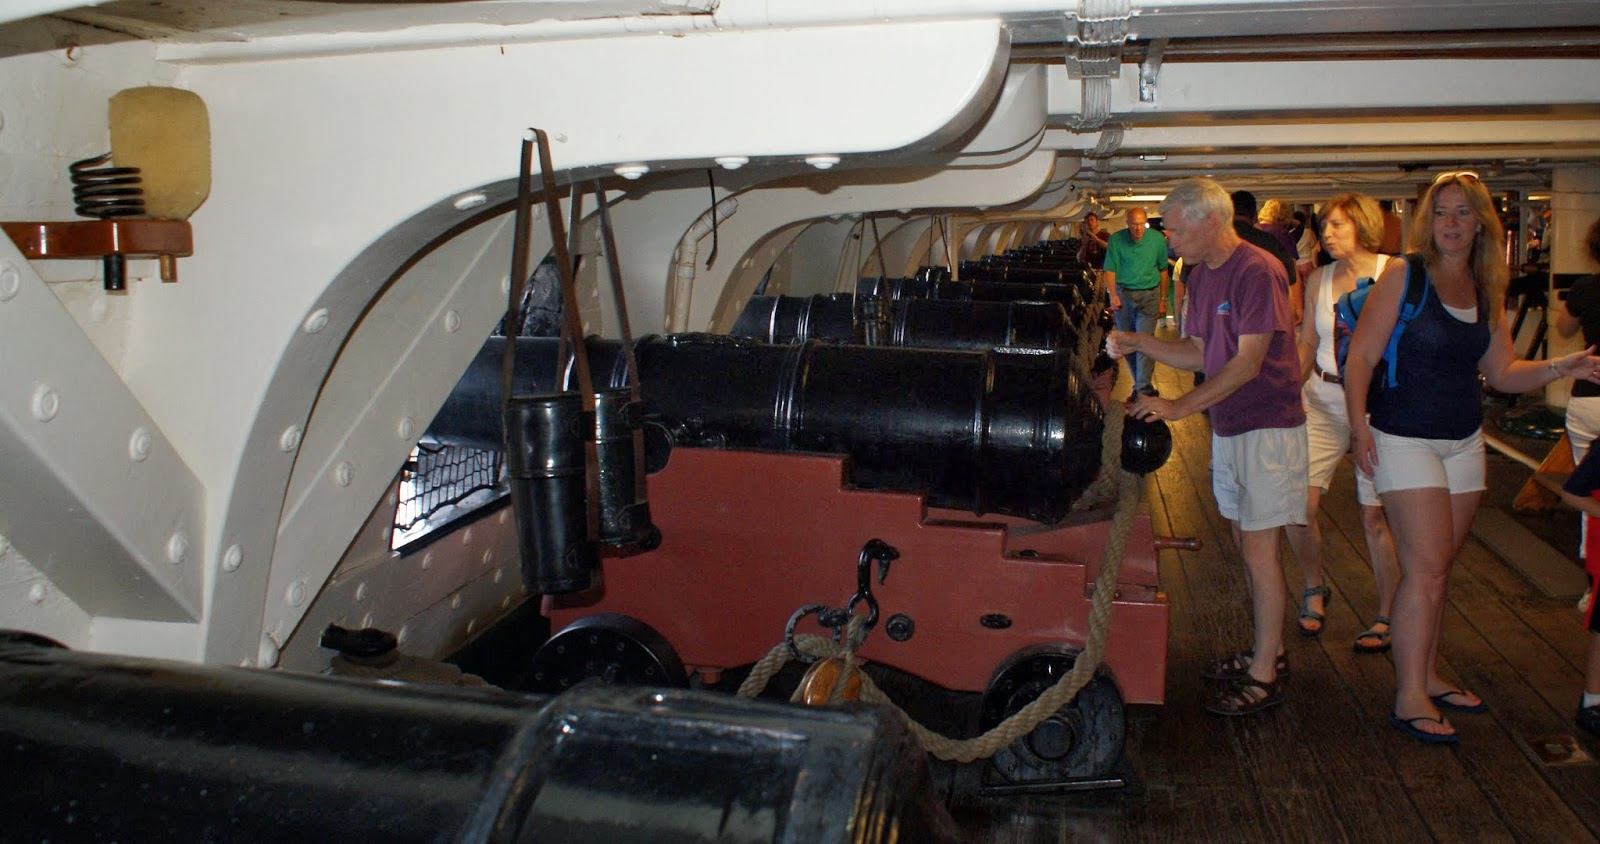 Planes, Trains, and Sailing Ships: November 2013 Uss Constitution Pictures Of Deck